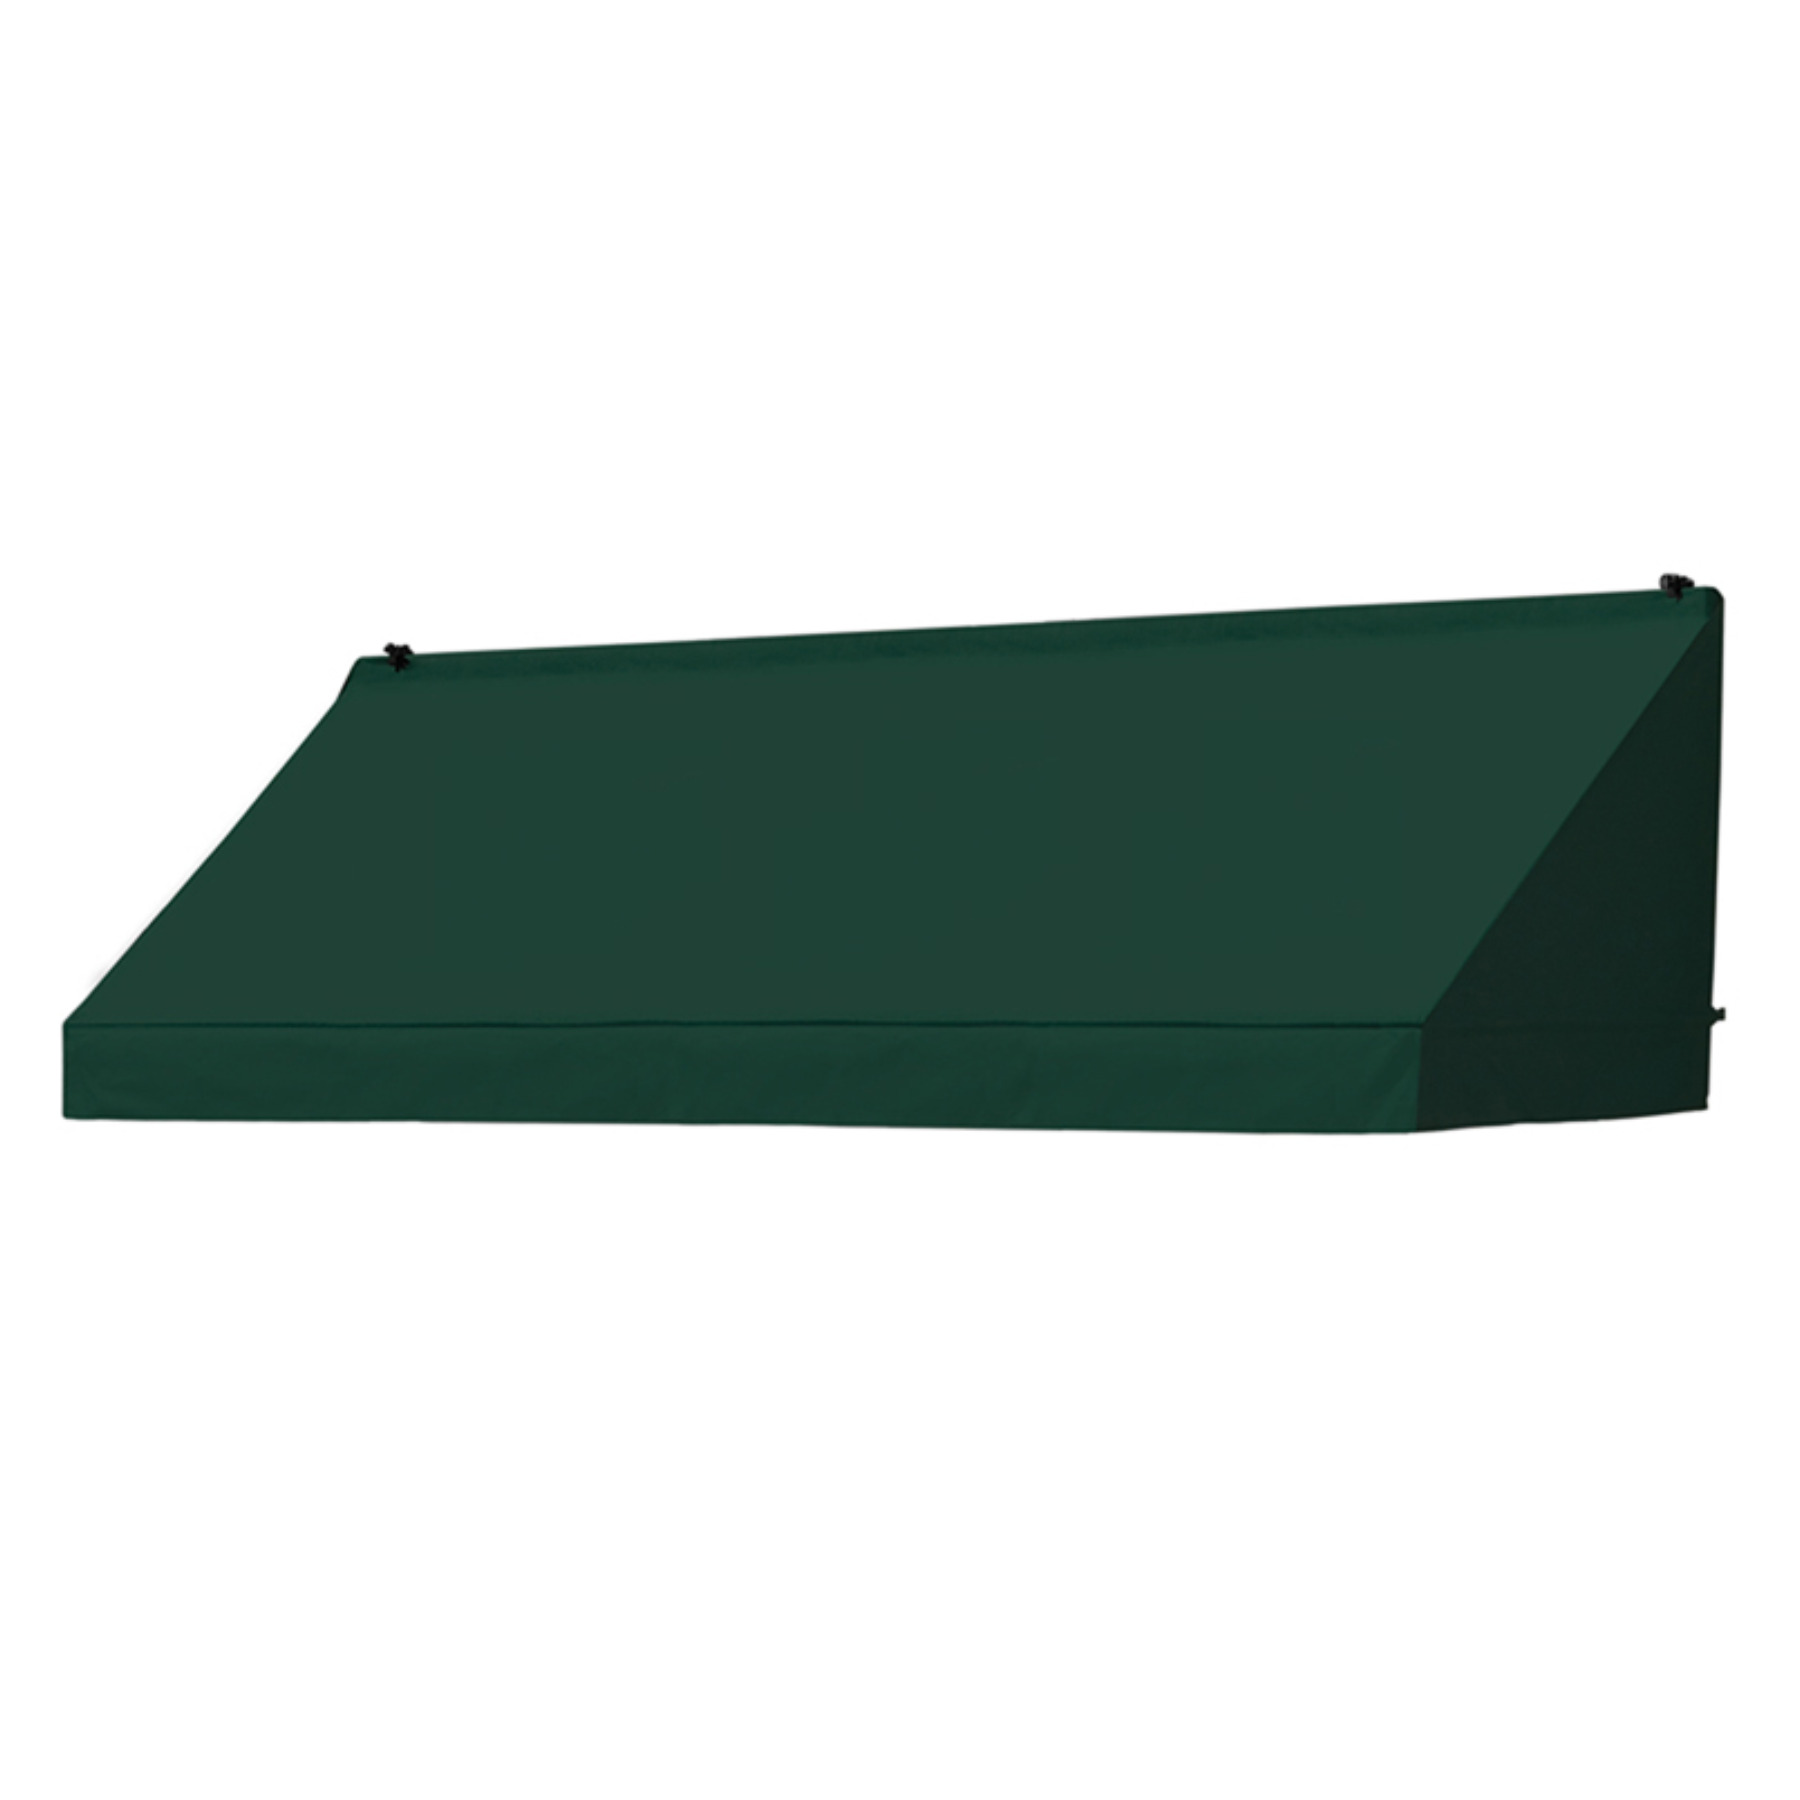 8' Traditional Awnings in a Box, Forest Green